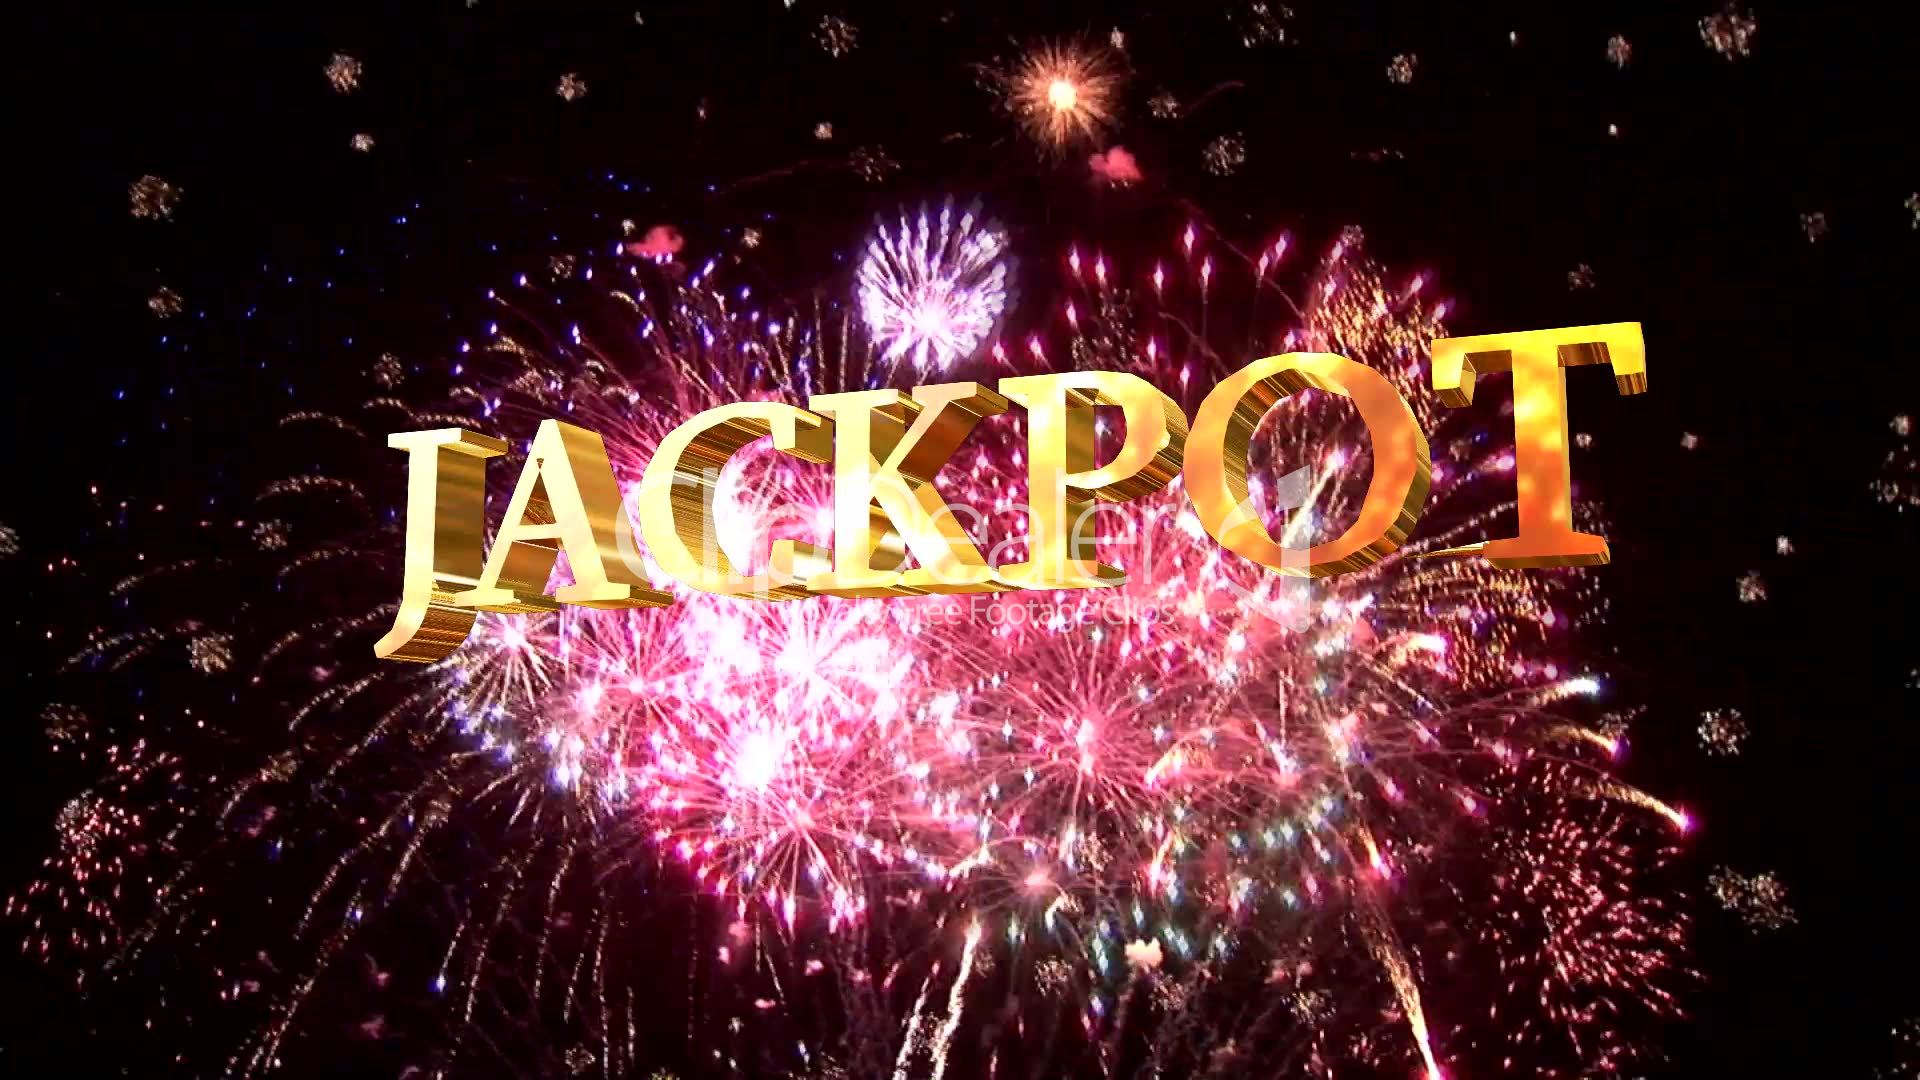 Jackpot Sign: Royalty-free video and stock footage